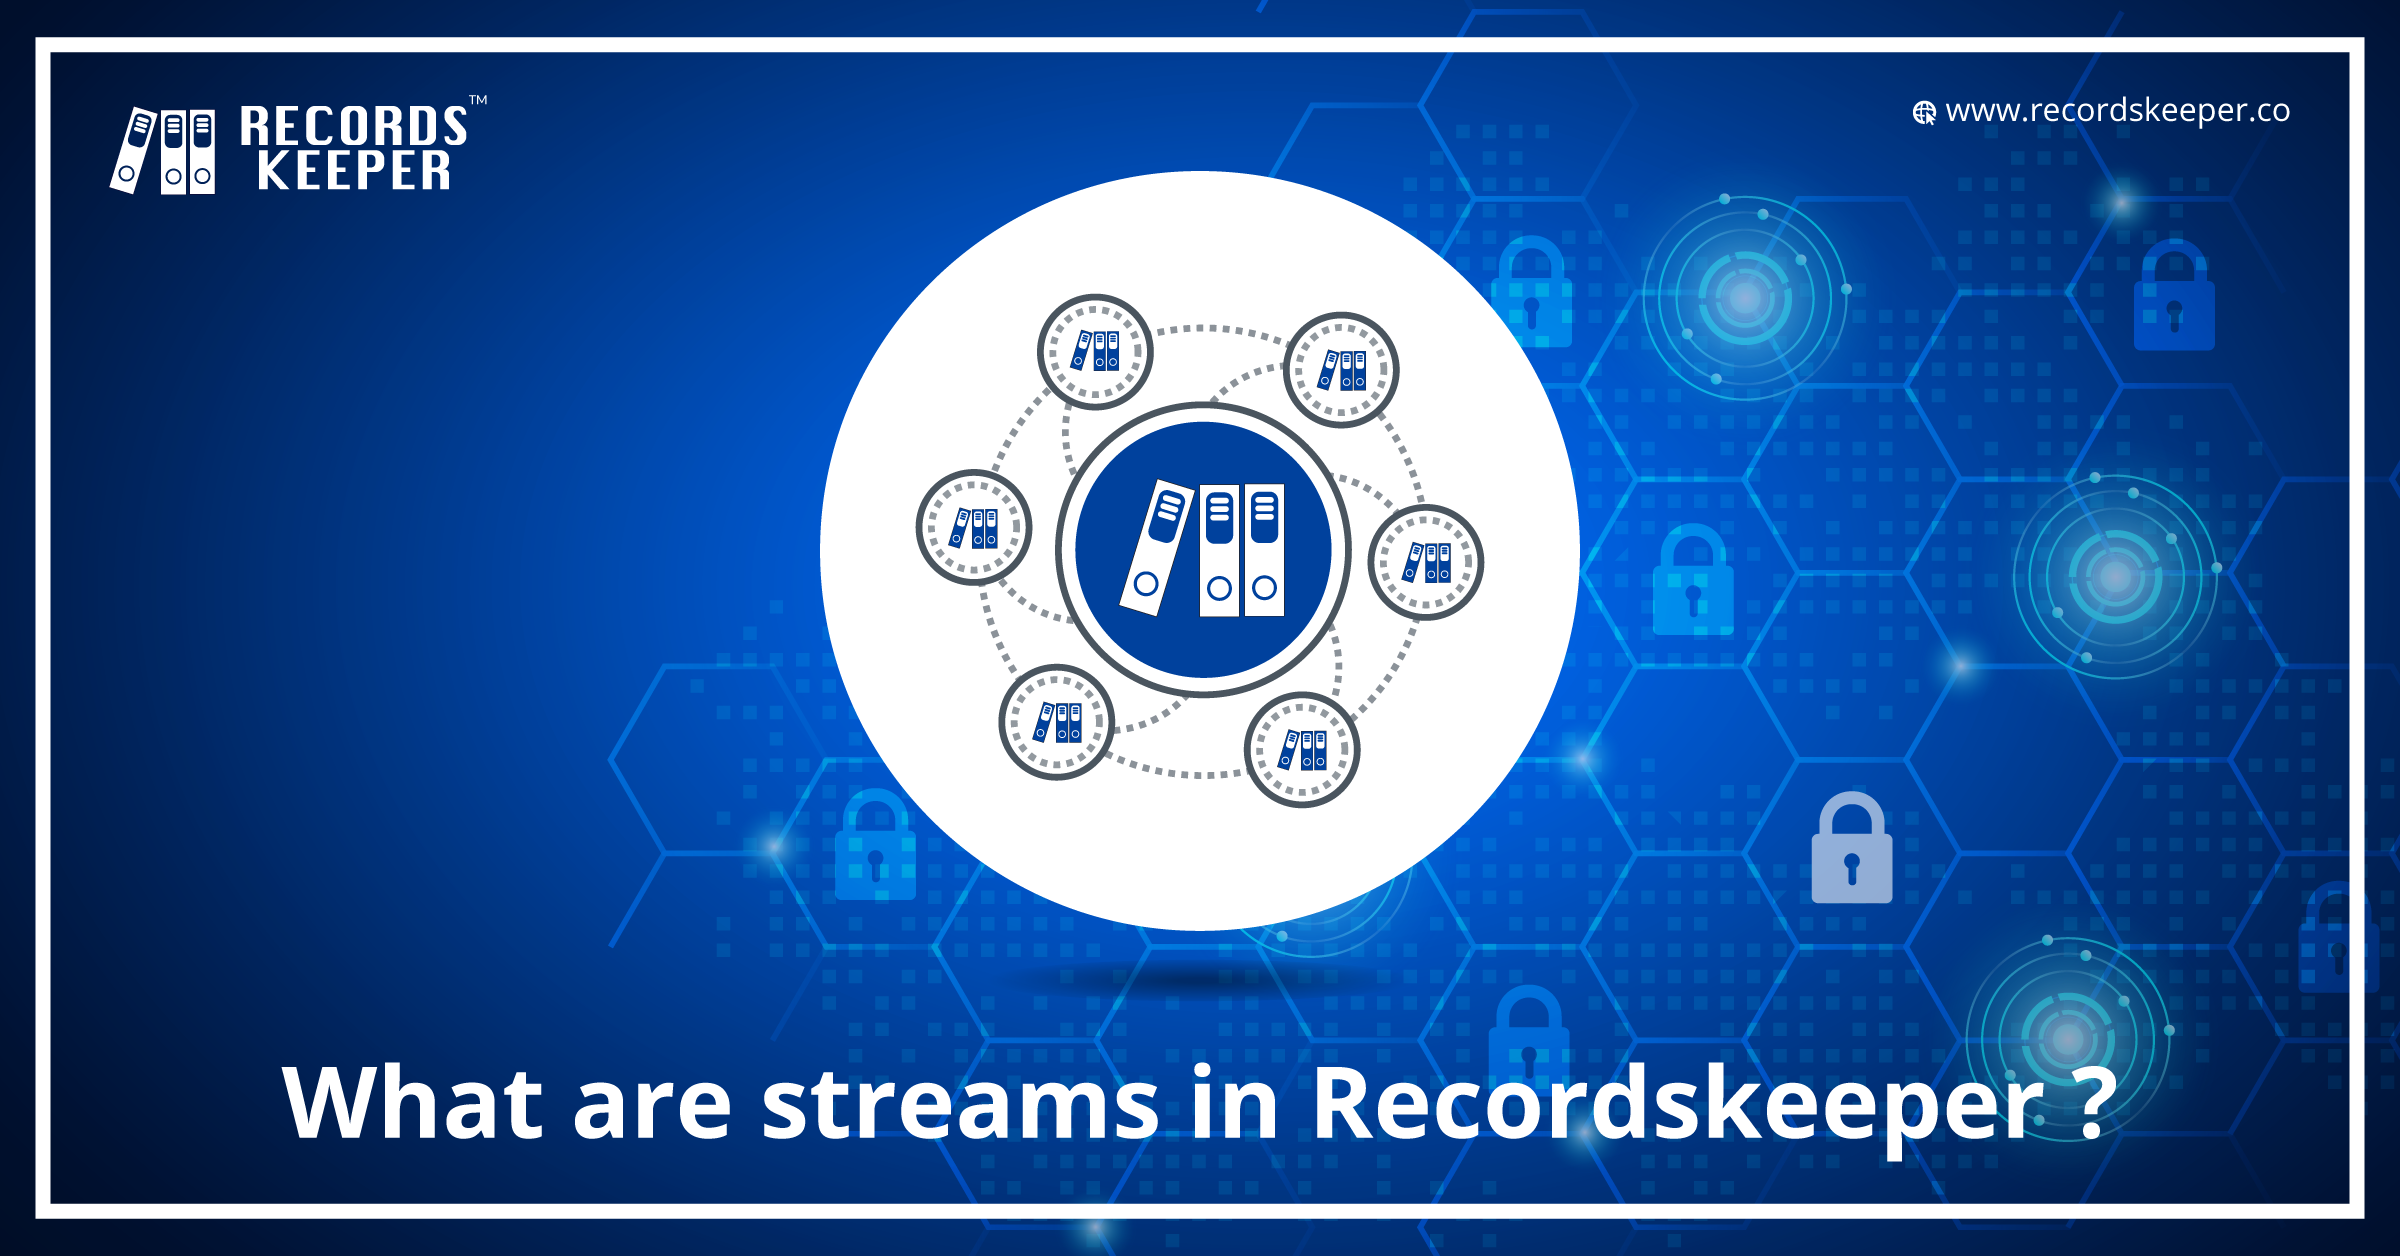 What are streams in RecordsKeeper?